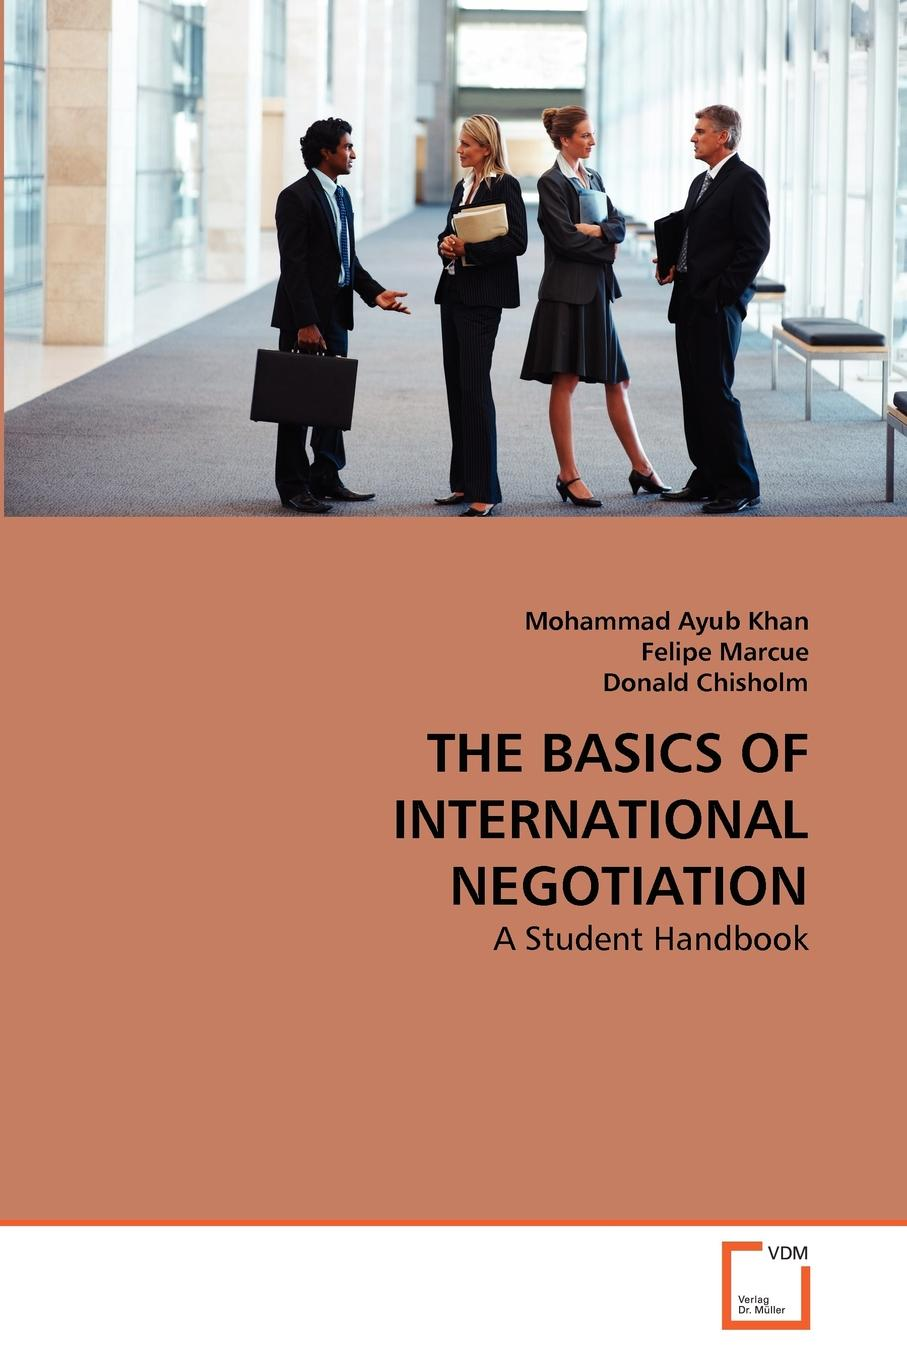 Mohammad Ayub Khan, Felipe Marcue, Donald Chisholm THE BASICS OF INTERNATIONAL NEGOTIATION yoram koren the global manufacturing revolution product process business integration and reconfigurable systems